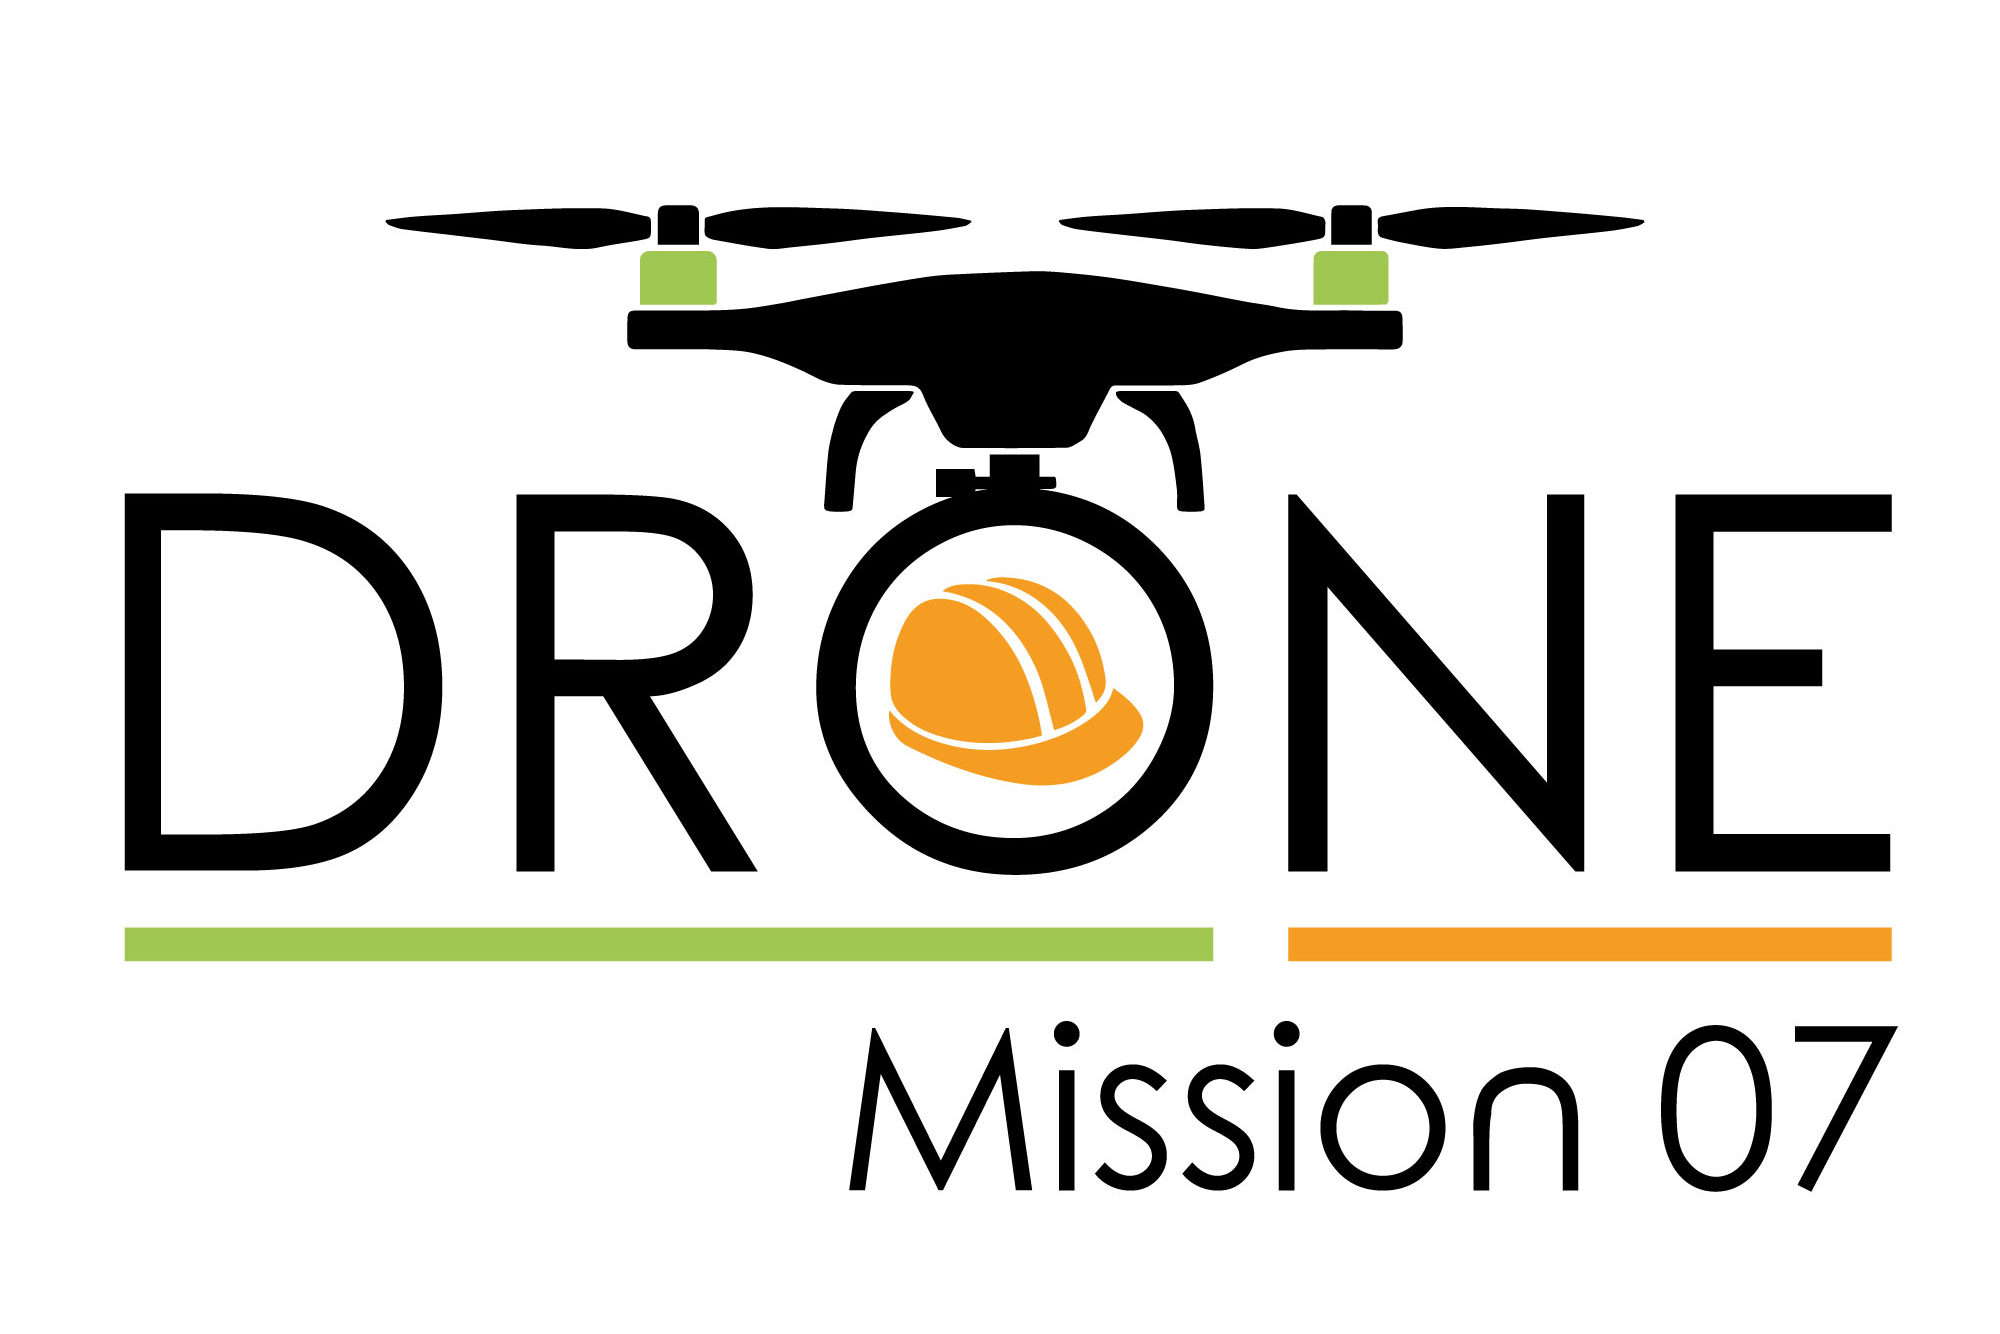 Drone Mission 07